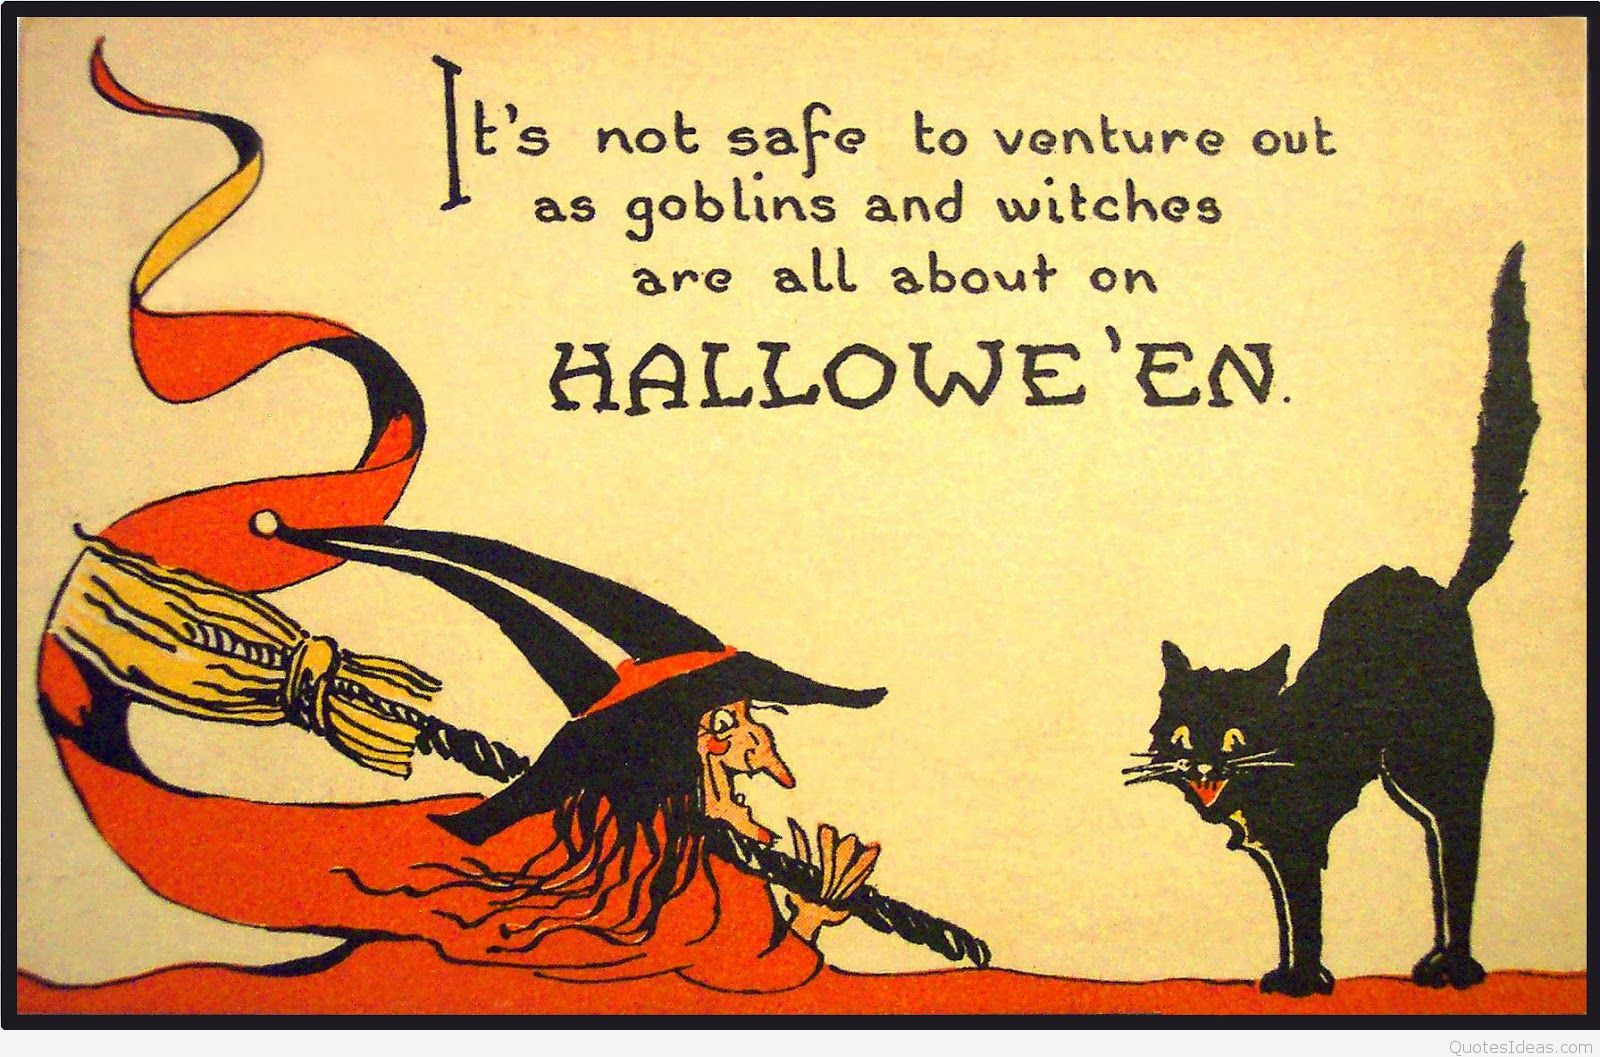 From Ghoulies And Ghosties And Long Leggety Beasties And Things That Go  Bump In The Night, Good Lord, Deliver Us! : Scottish Saying. Scary Halloween  Quotes